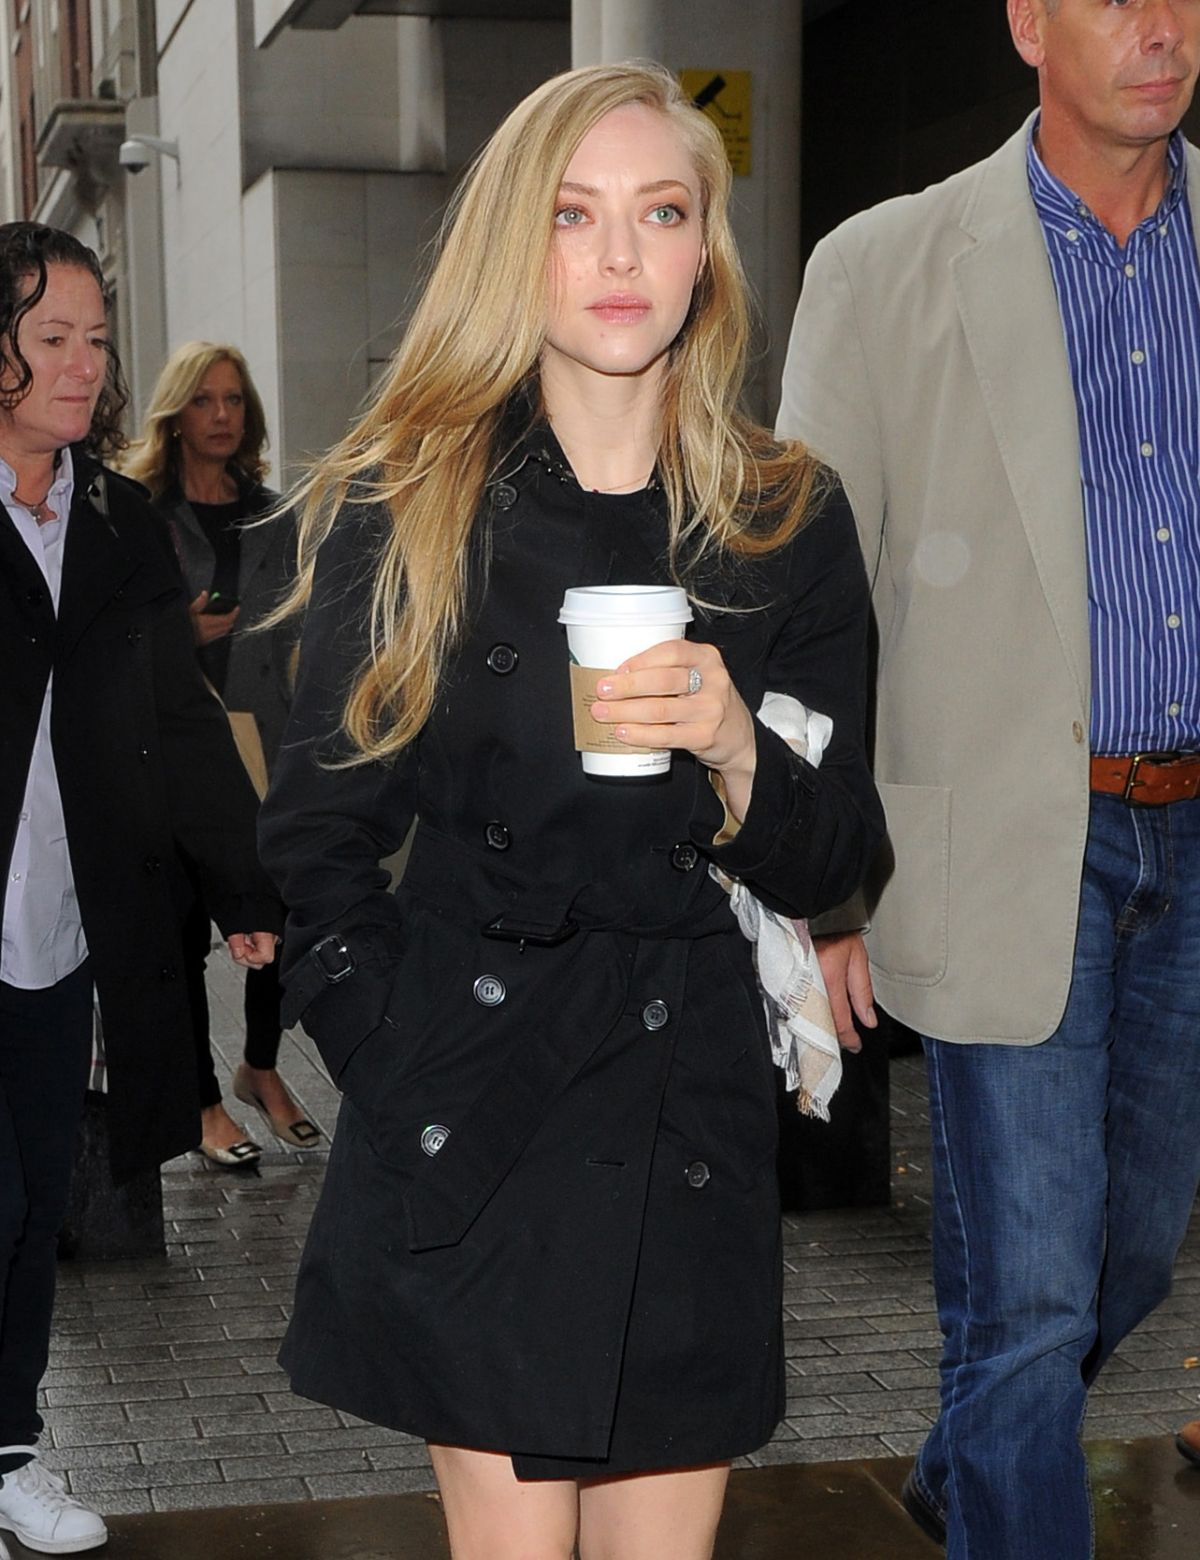 AMANDA SEYFRIED Arrives at BBC Radio 1 Studios in London